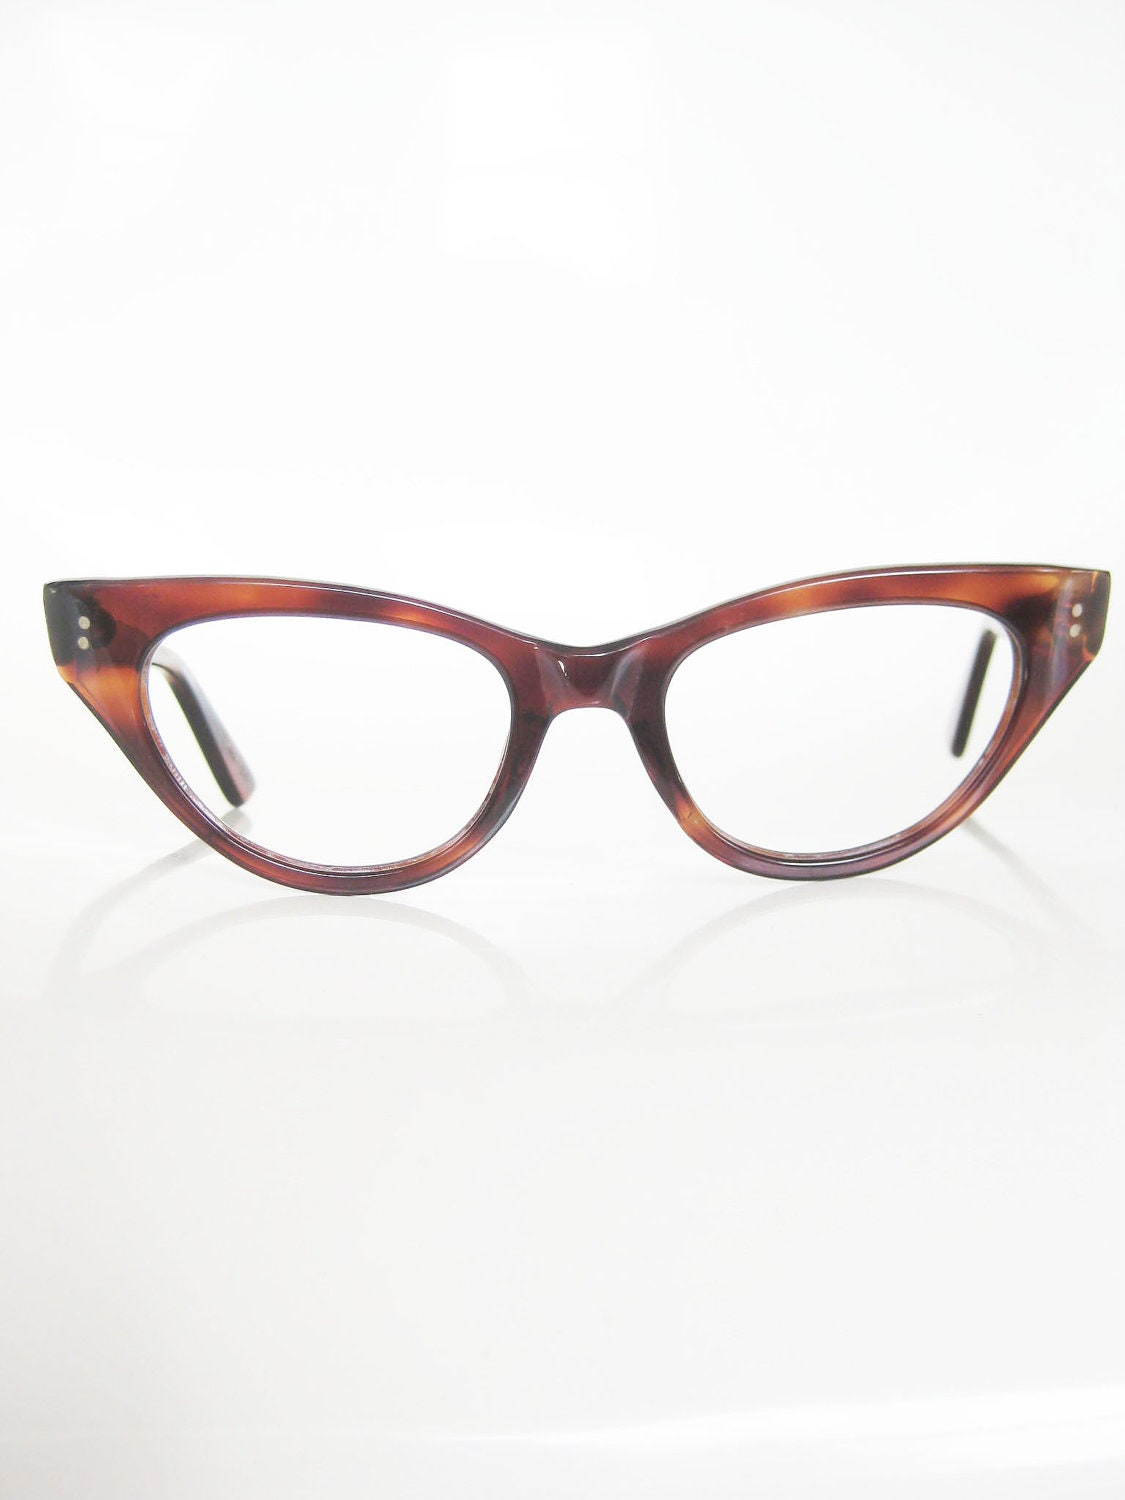 Old Glasses Frames New Lenses : Vintage Eyeglasses Cat Eye 60s French Frames 1960s Glasses